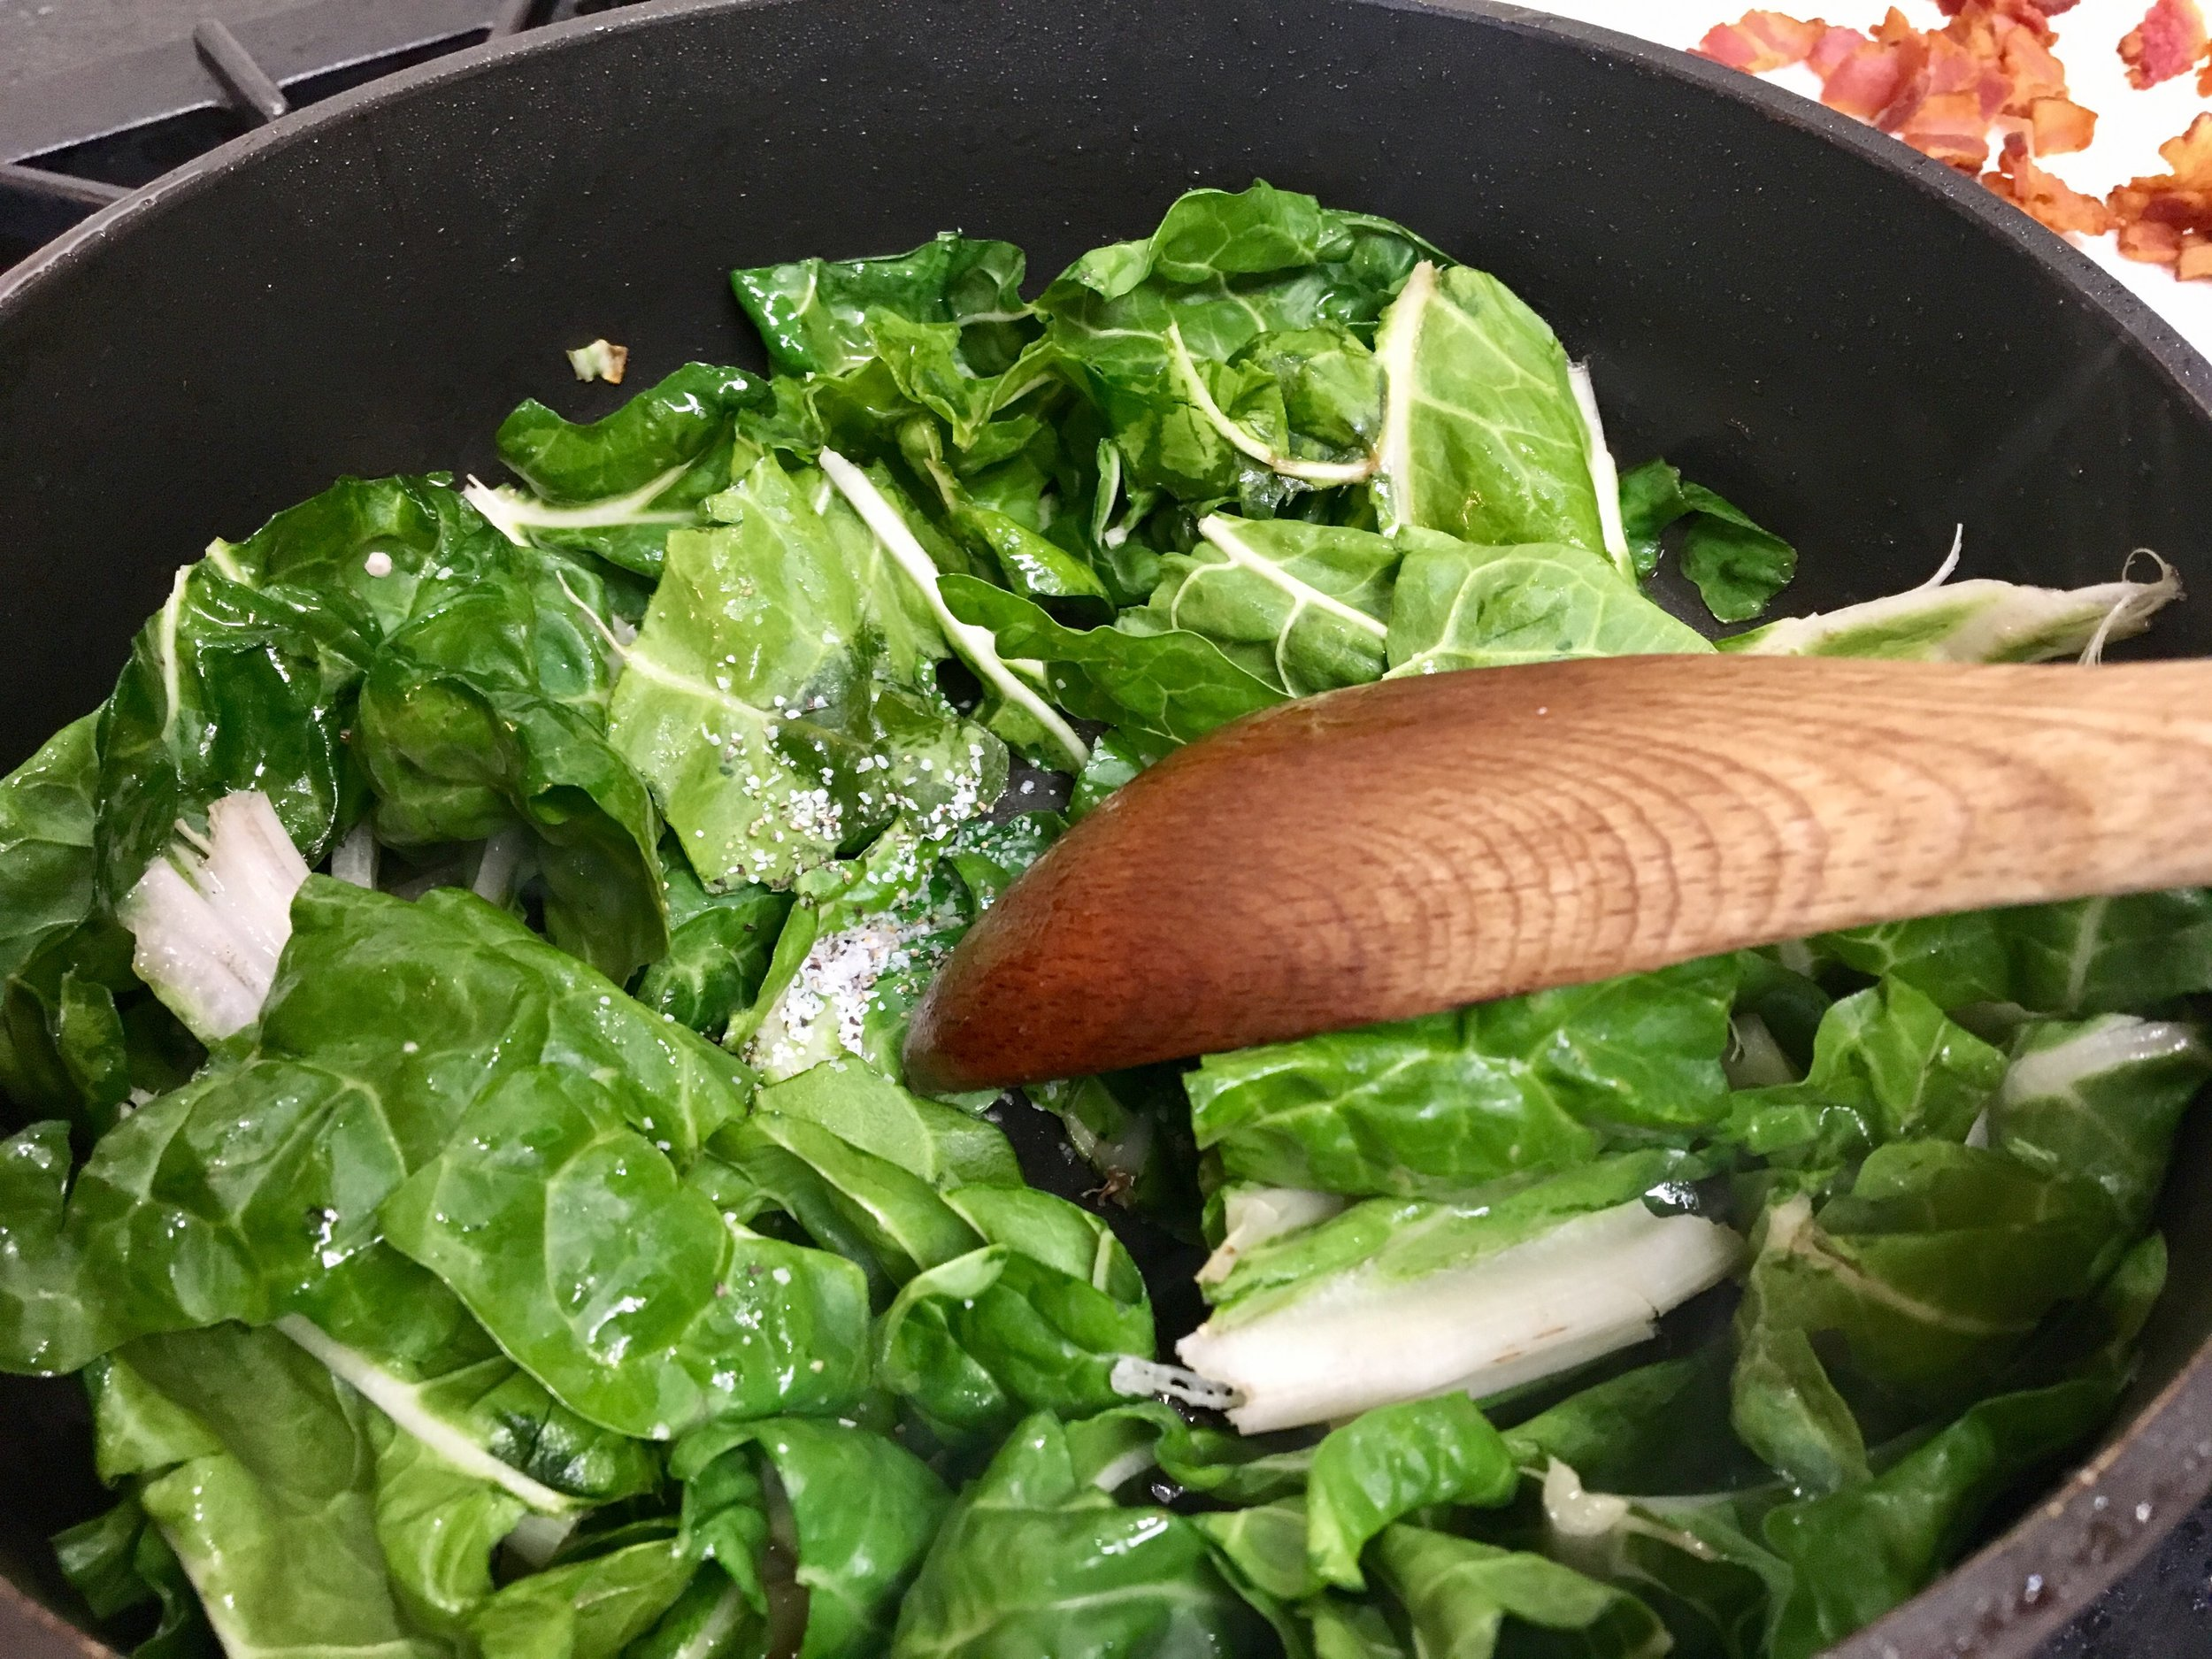 Wilting the Swiss Chard with the bacon drippings.